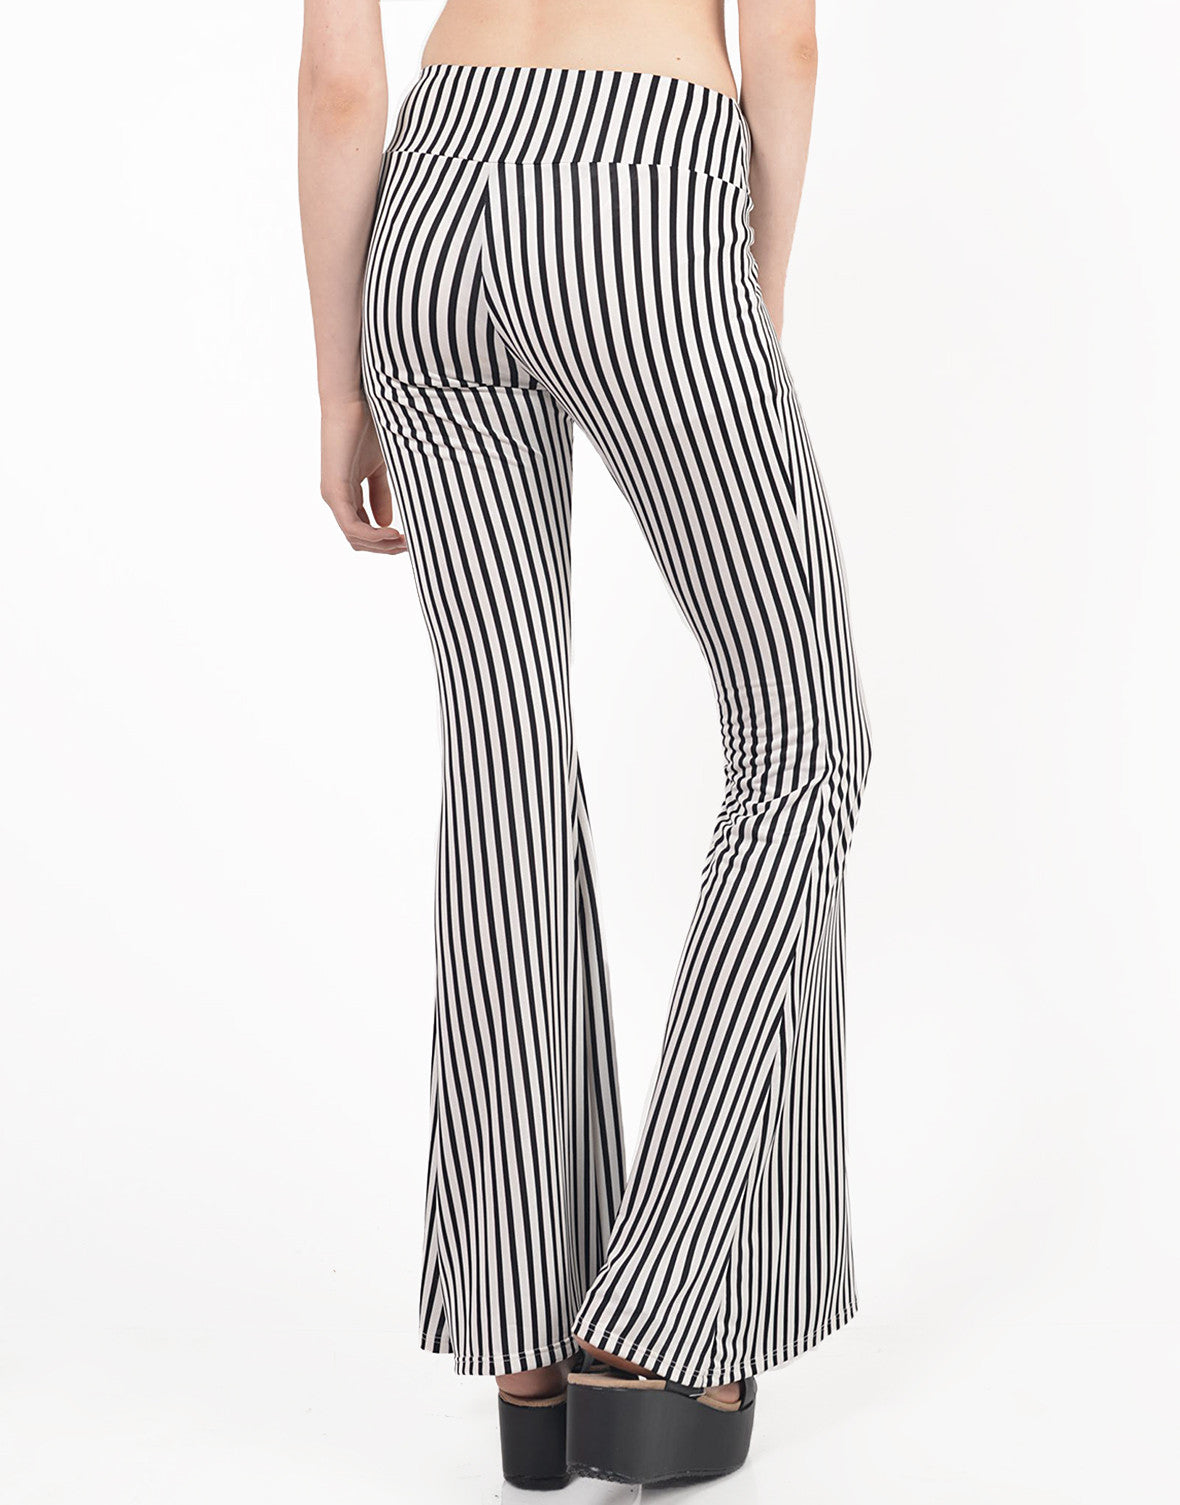 Back View of Striped Flare Pants